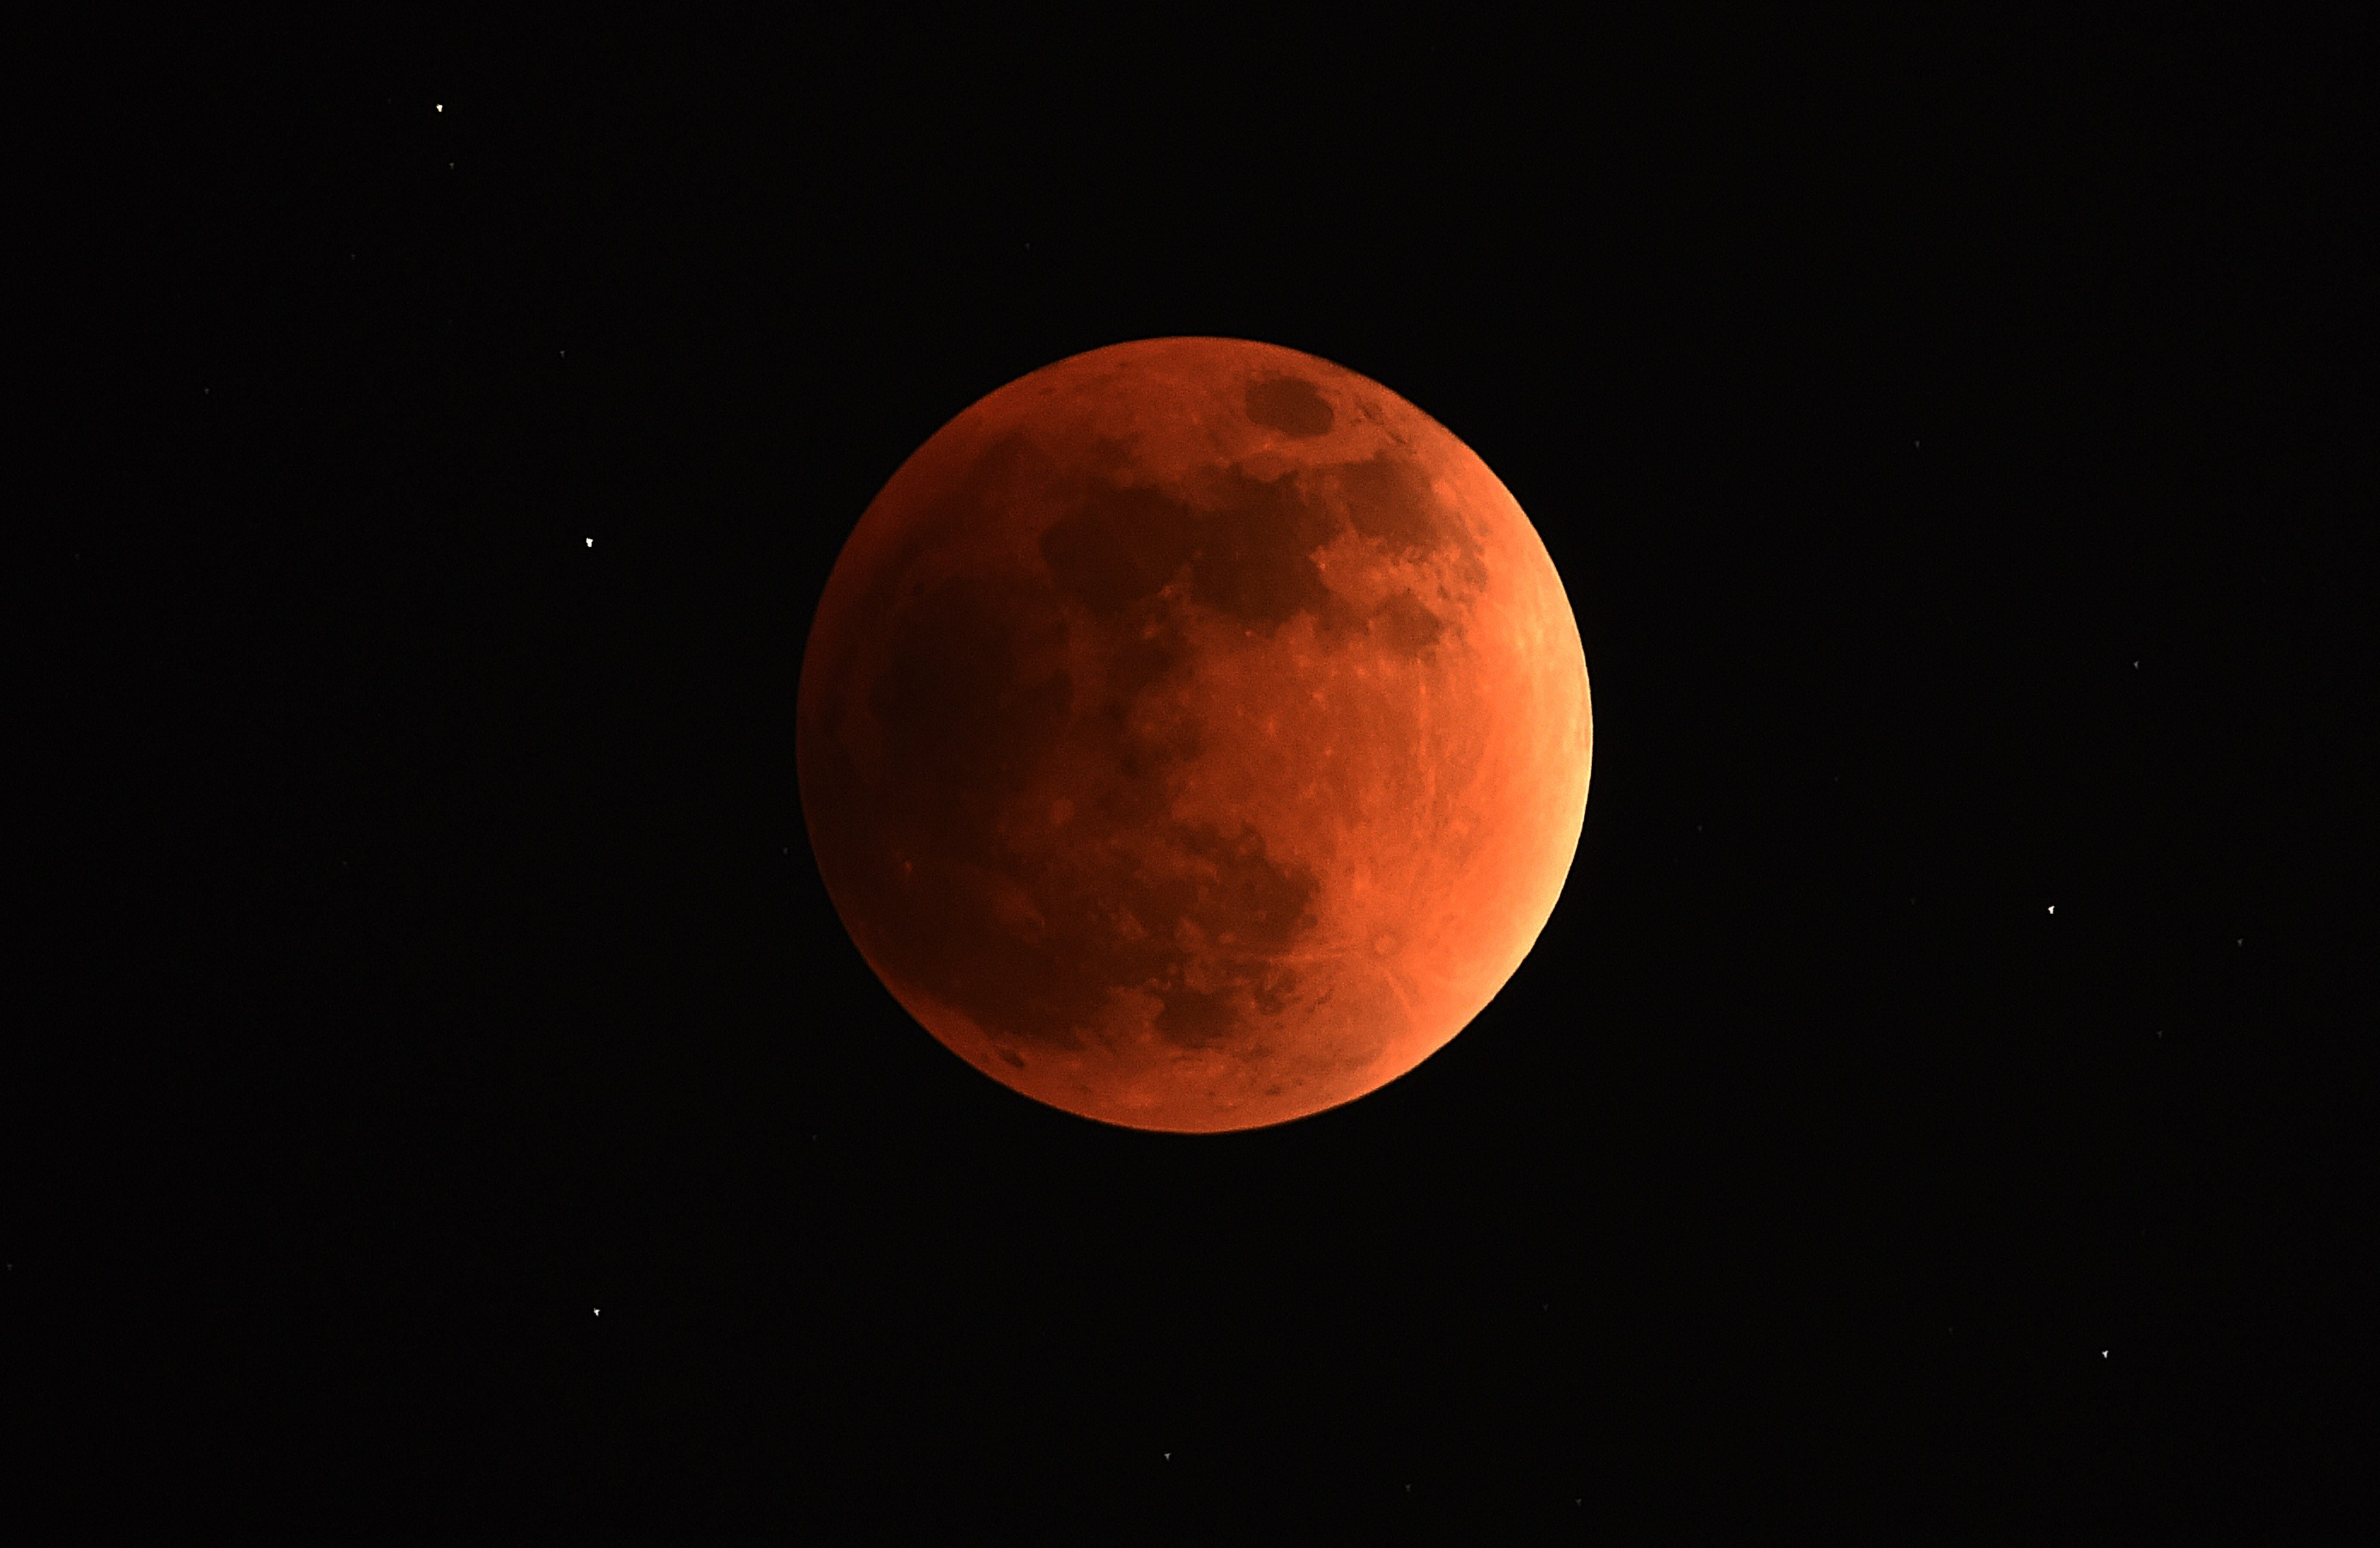 Triple treat: Supermoon, blue moon and lunar eclipse coming next week